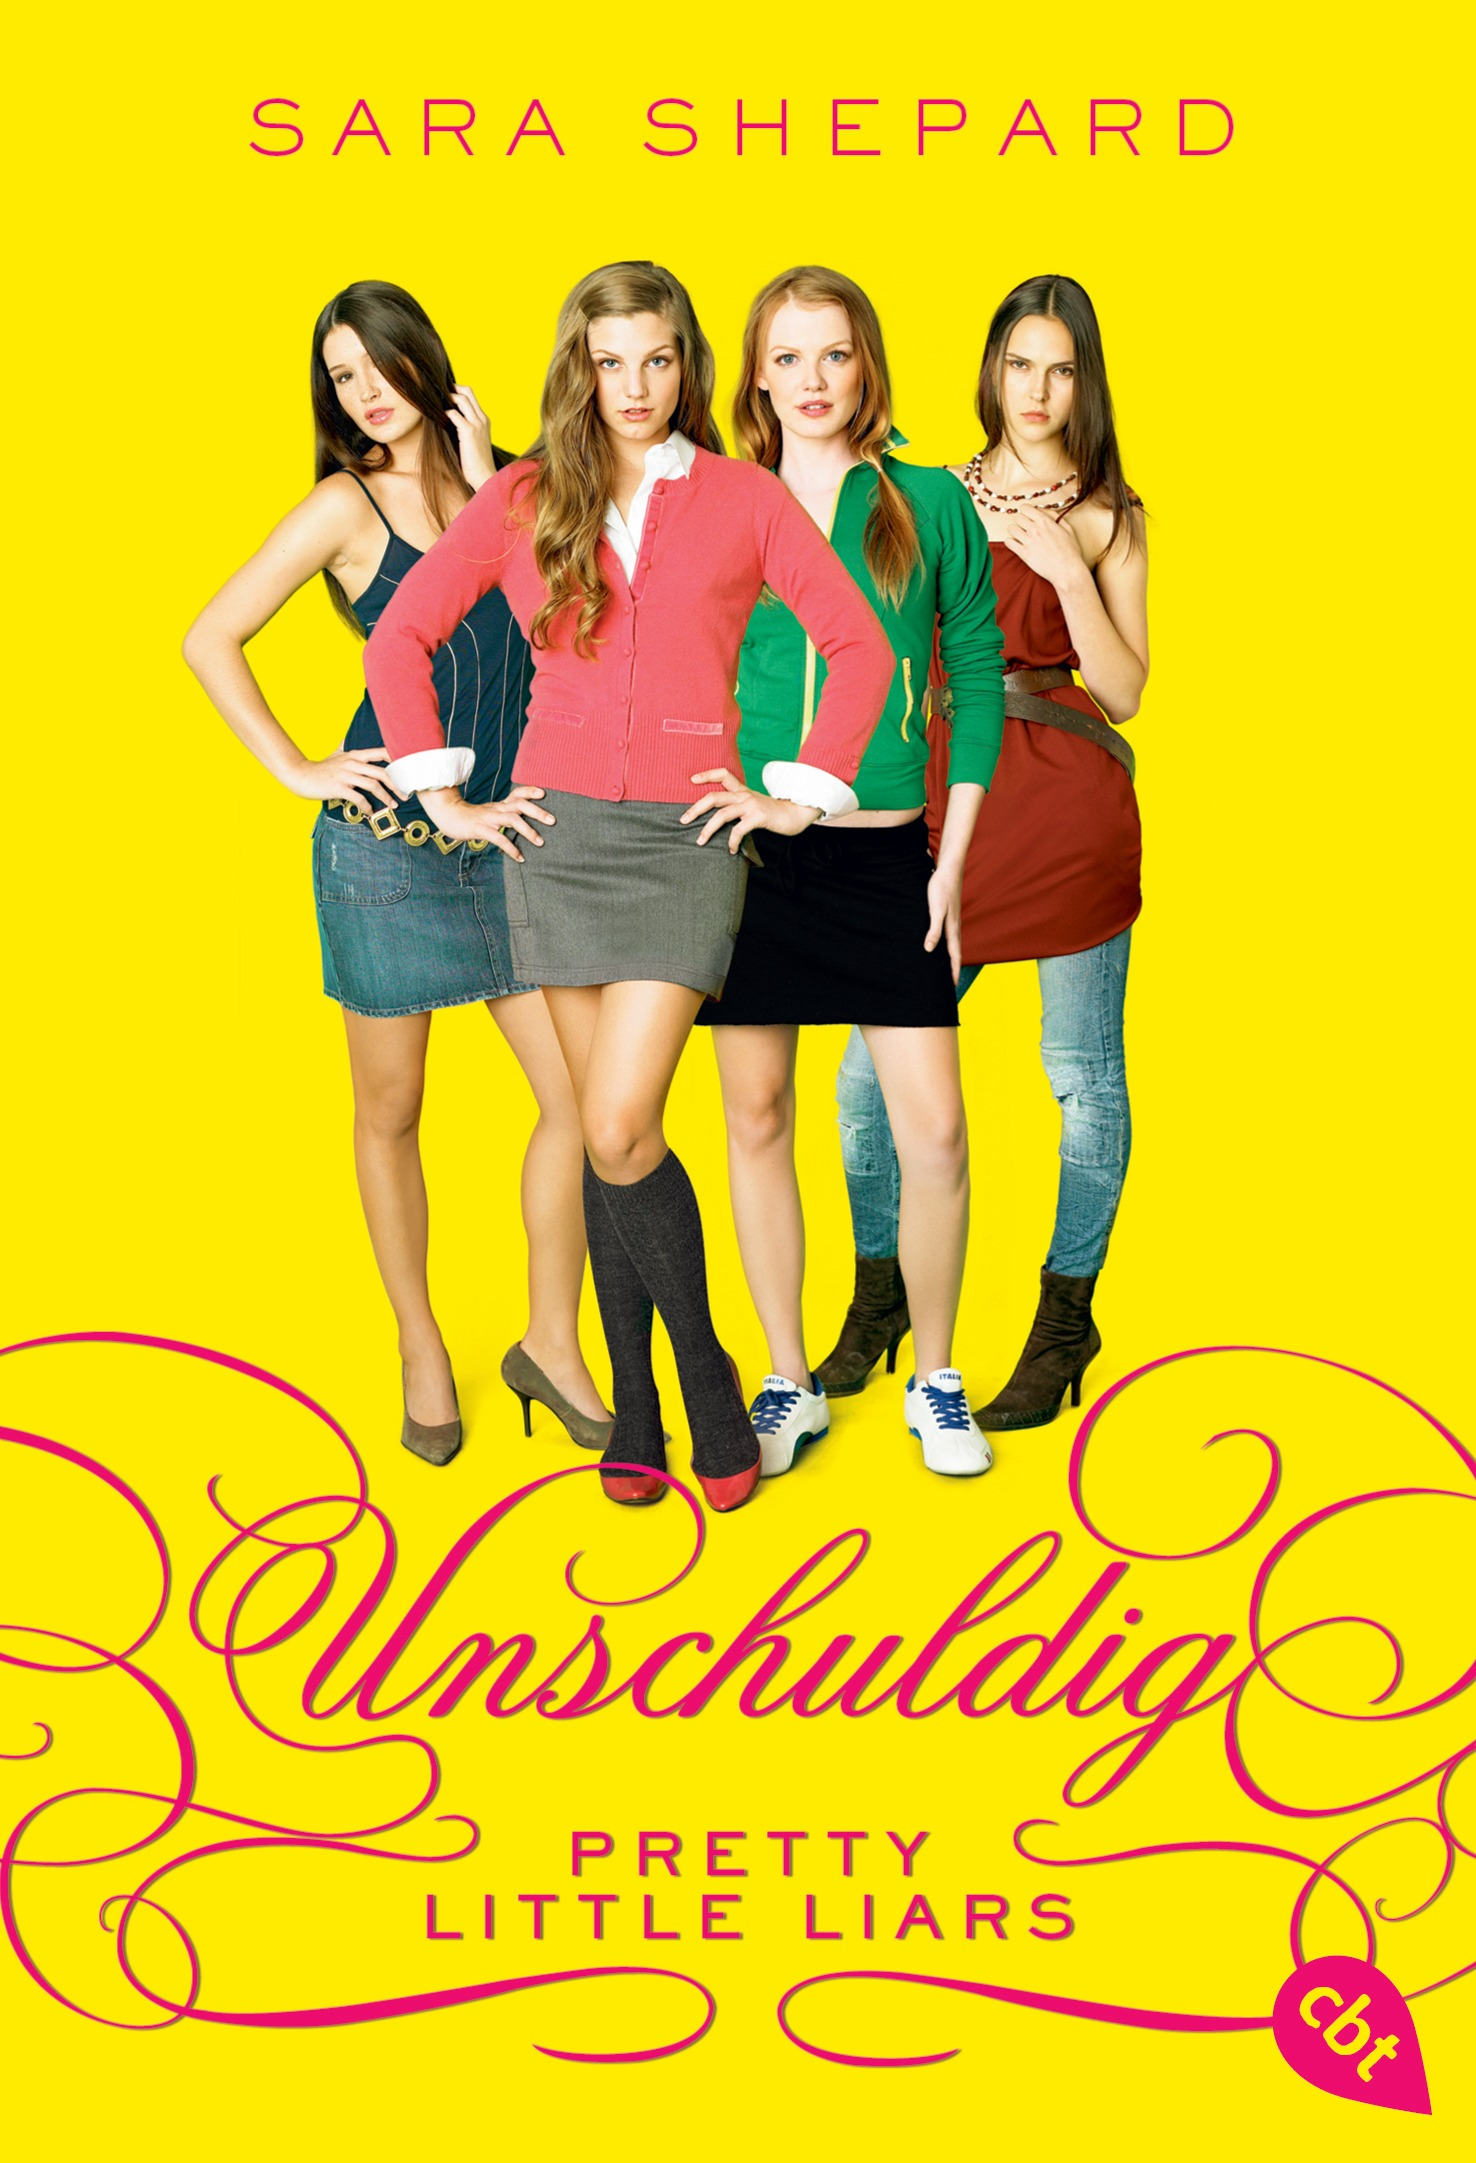 Pretty Little Liars Book Cover Characters : Sara shepard pretty little liars unschuldig cbj